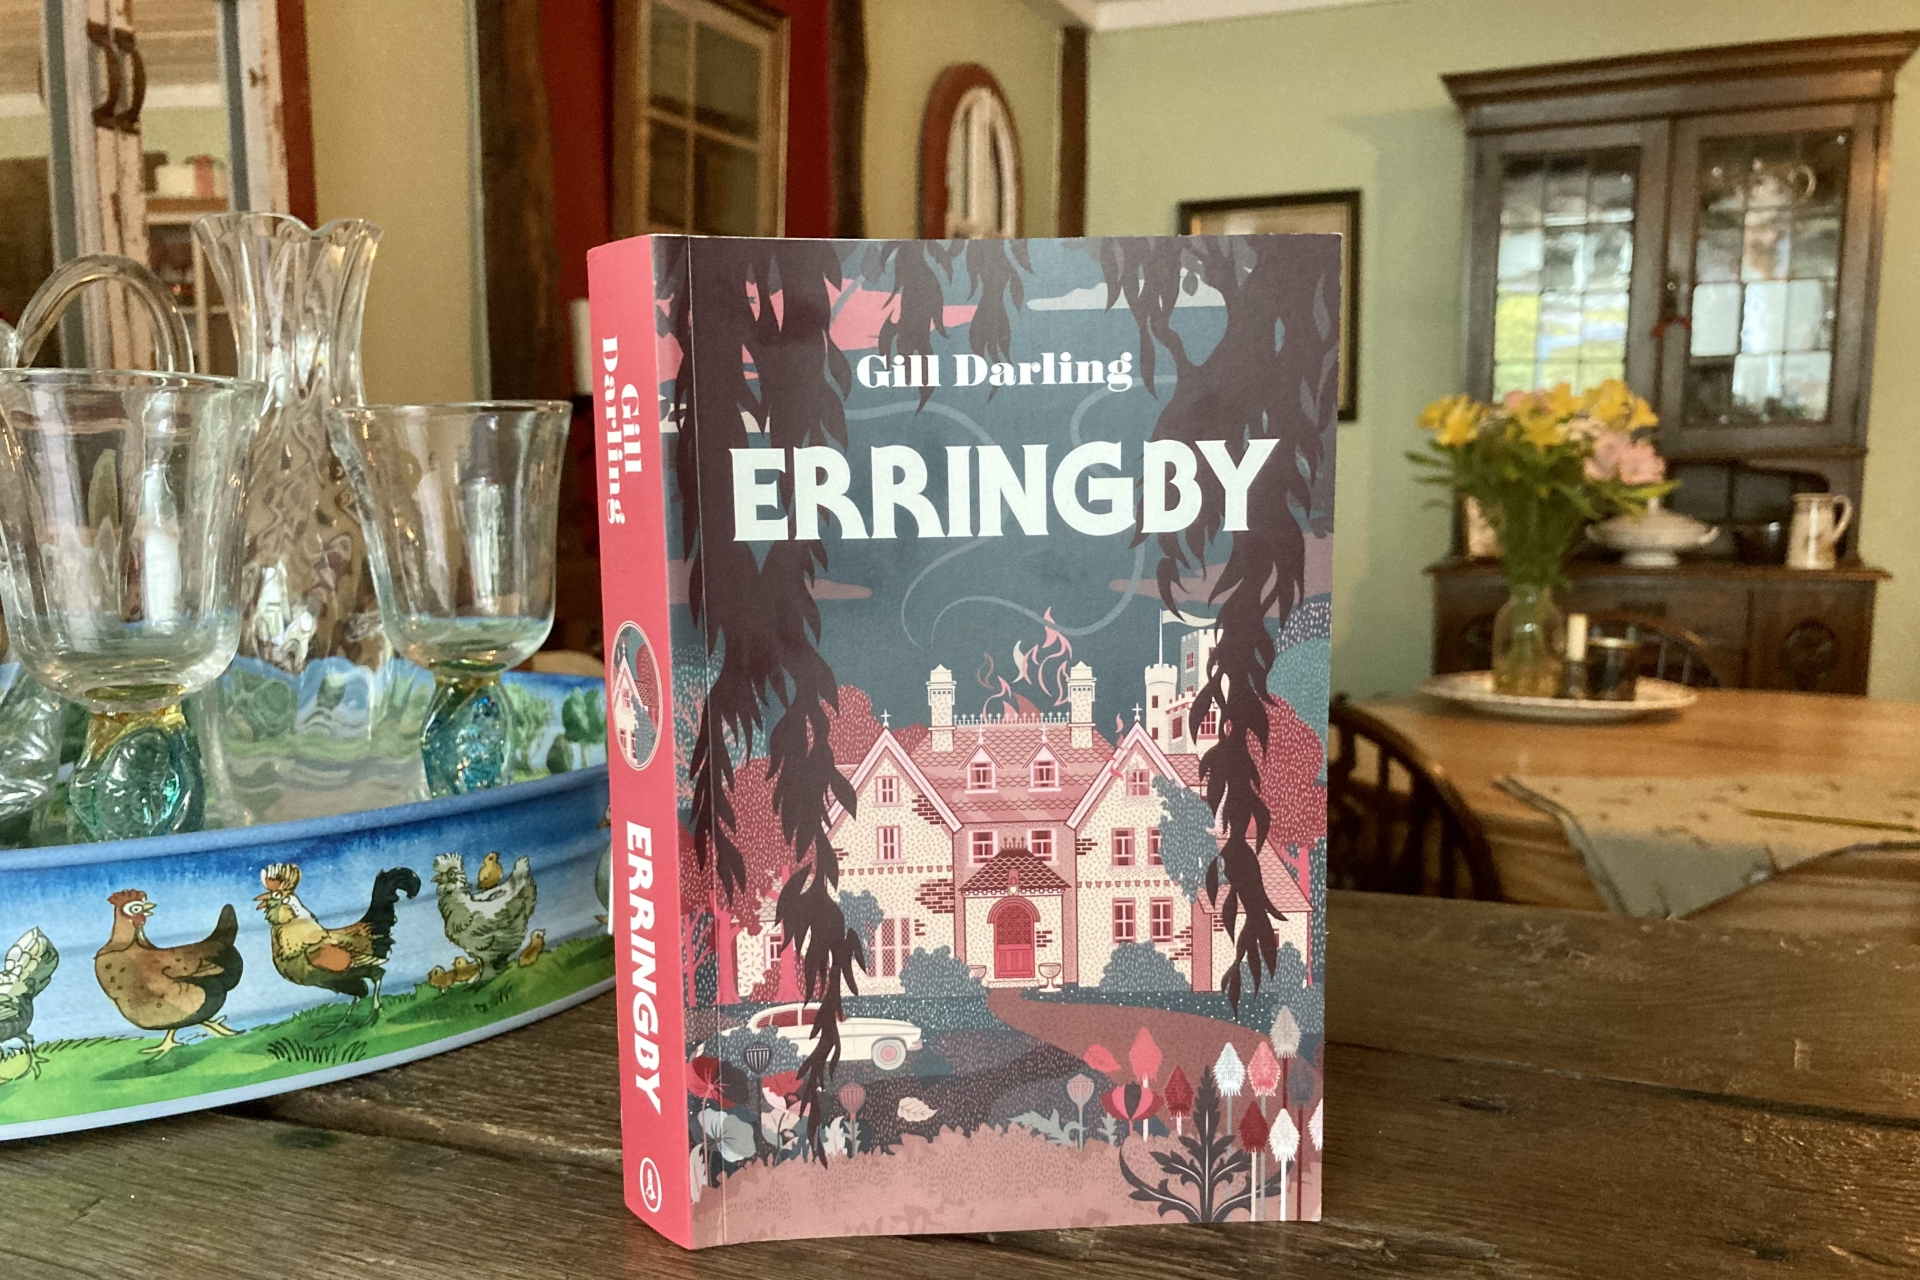 June 2021 Book Club Recommendation: Erringby by Gill Darling